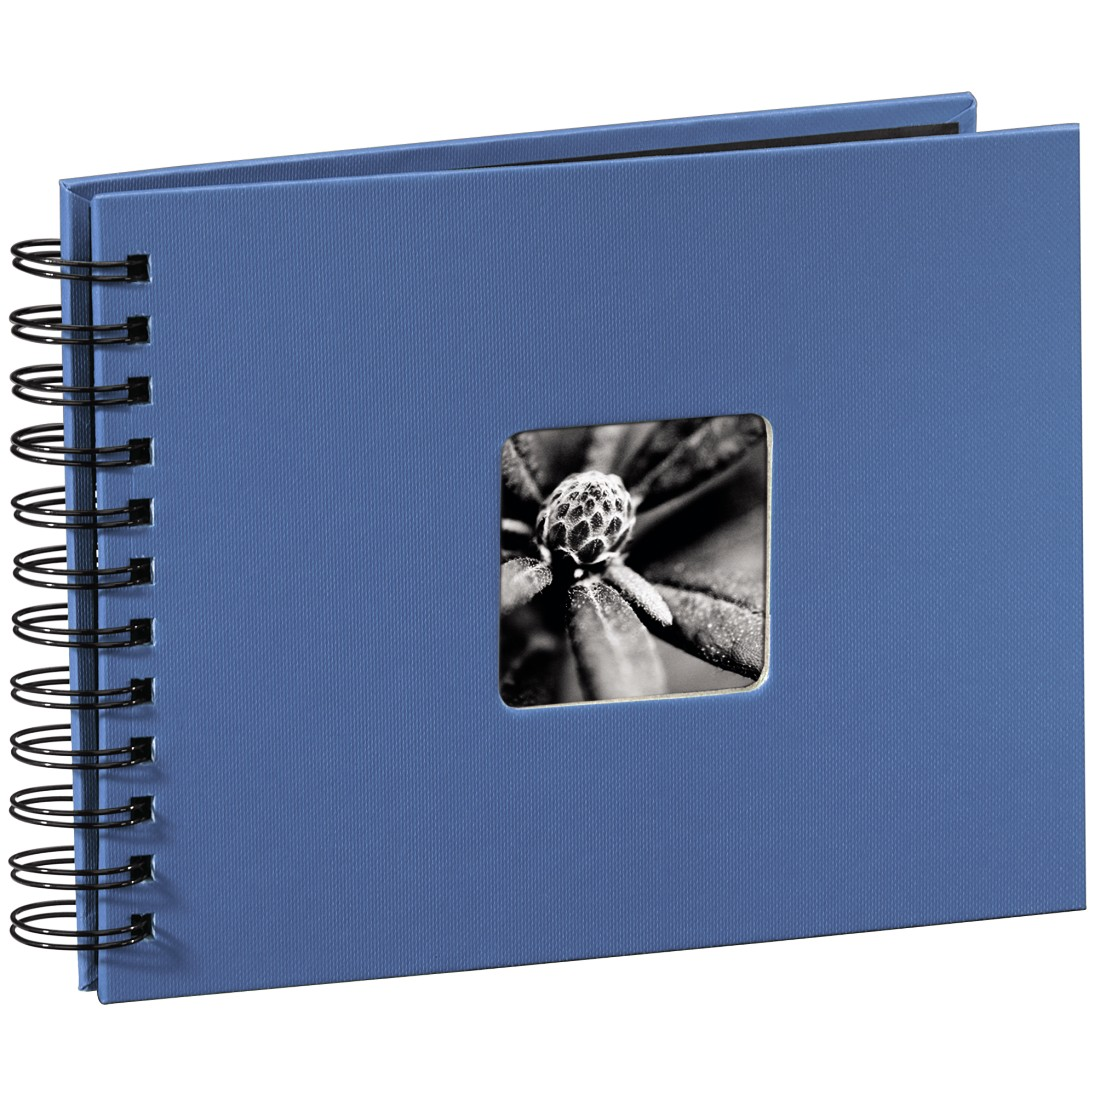 abx High-Res Image - Hama, Fine Art Spiral Bound Album, 24 x 17 cm, 50 black pages, azure